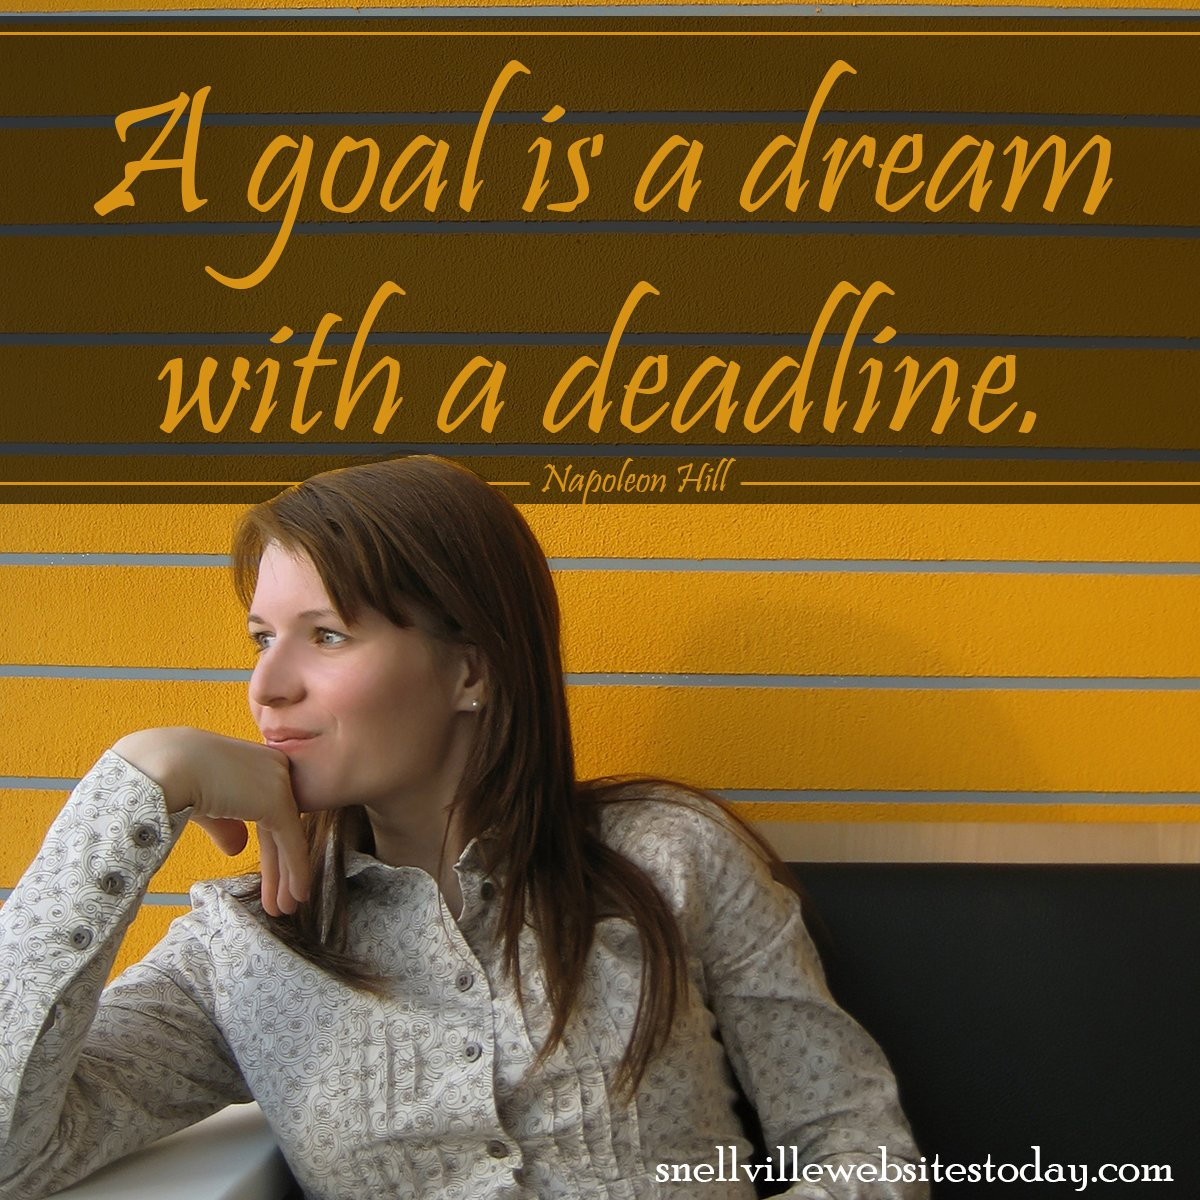 Small Business Snellville Websites - A goal is a dream with a deadline